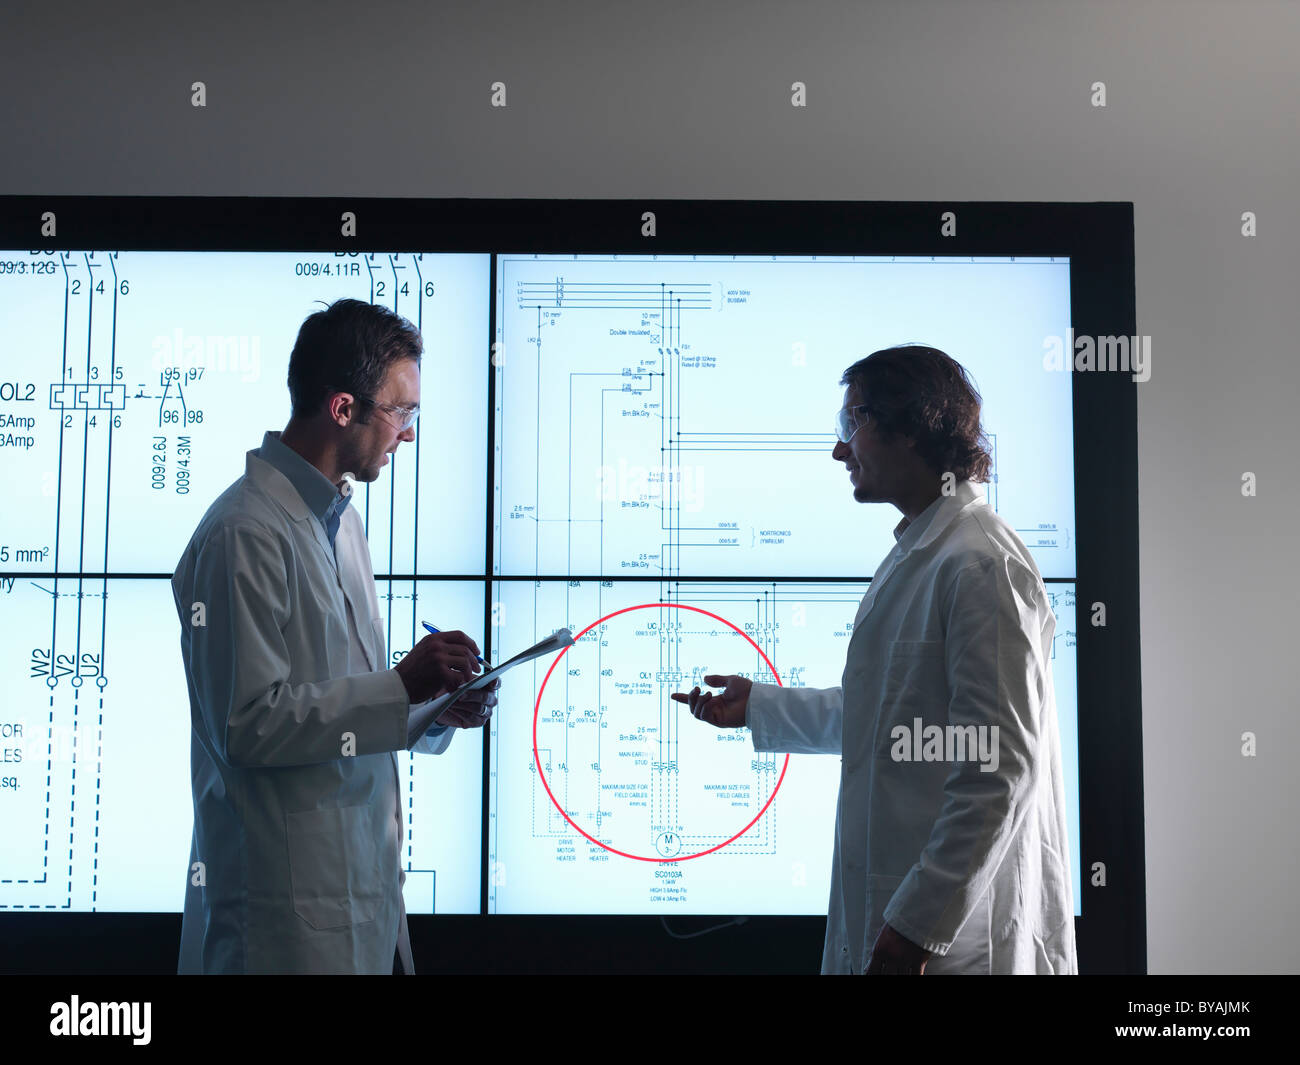 Design Diagram Stock Photos Images Alamy Glass On The Electronic Schematic Diagramideal Technology Background Scientist With Diagrams Screen Image